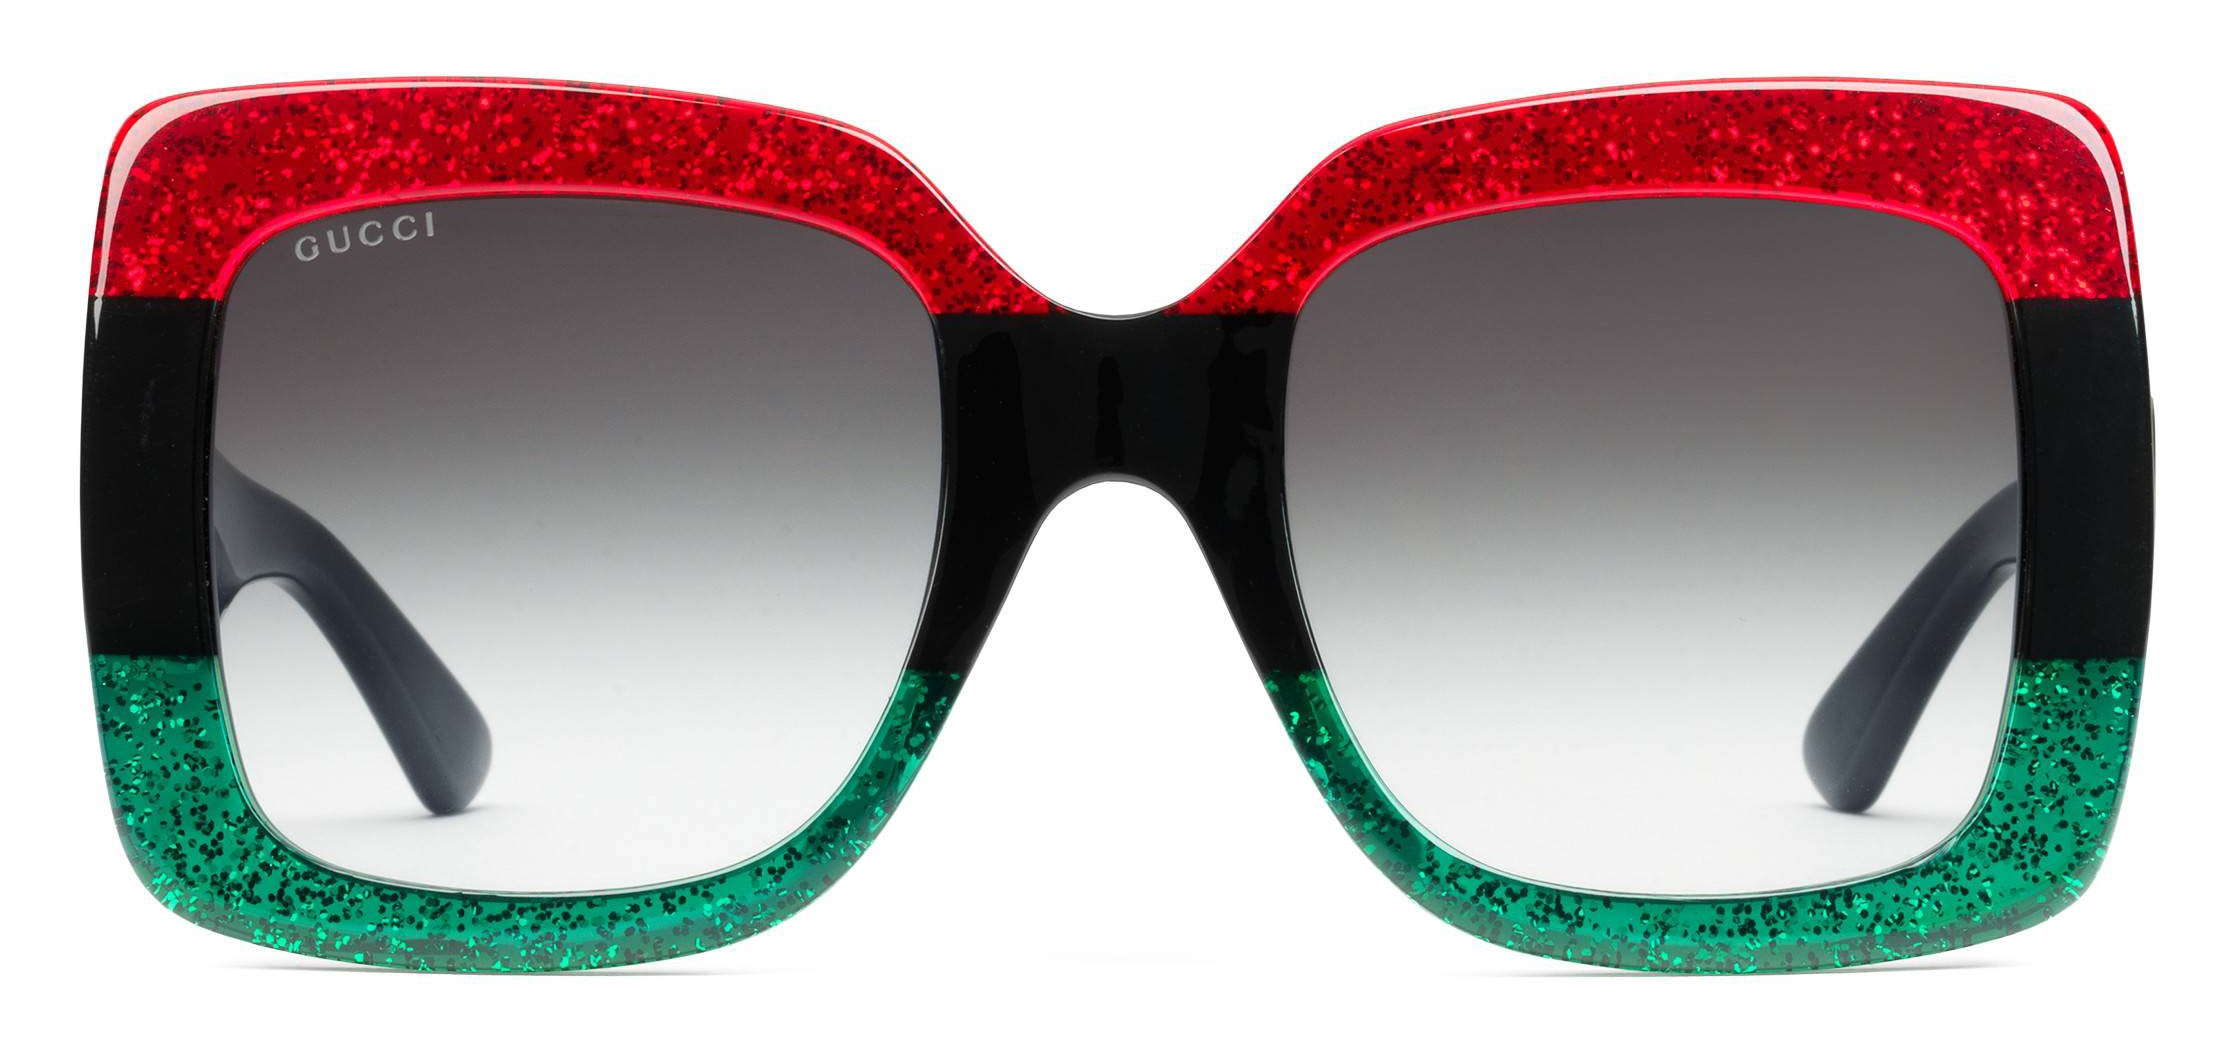 ba946d79123 Gucci - Acetate Square Sunglasses - Green Black and Red with Glitter - Gucci  Eyewear - Avvenice